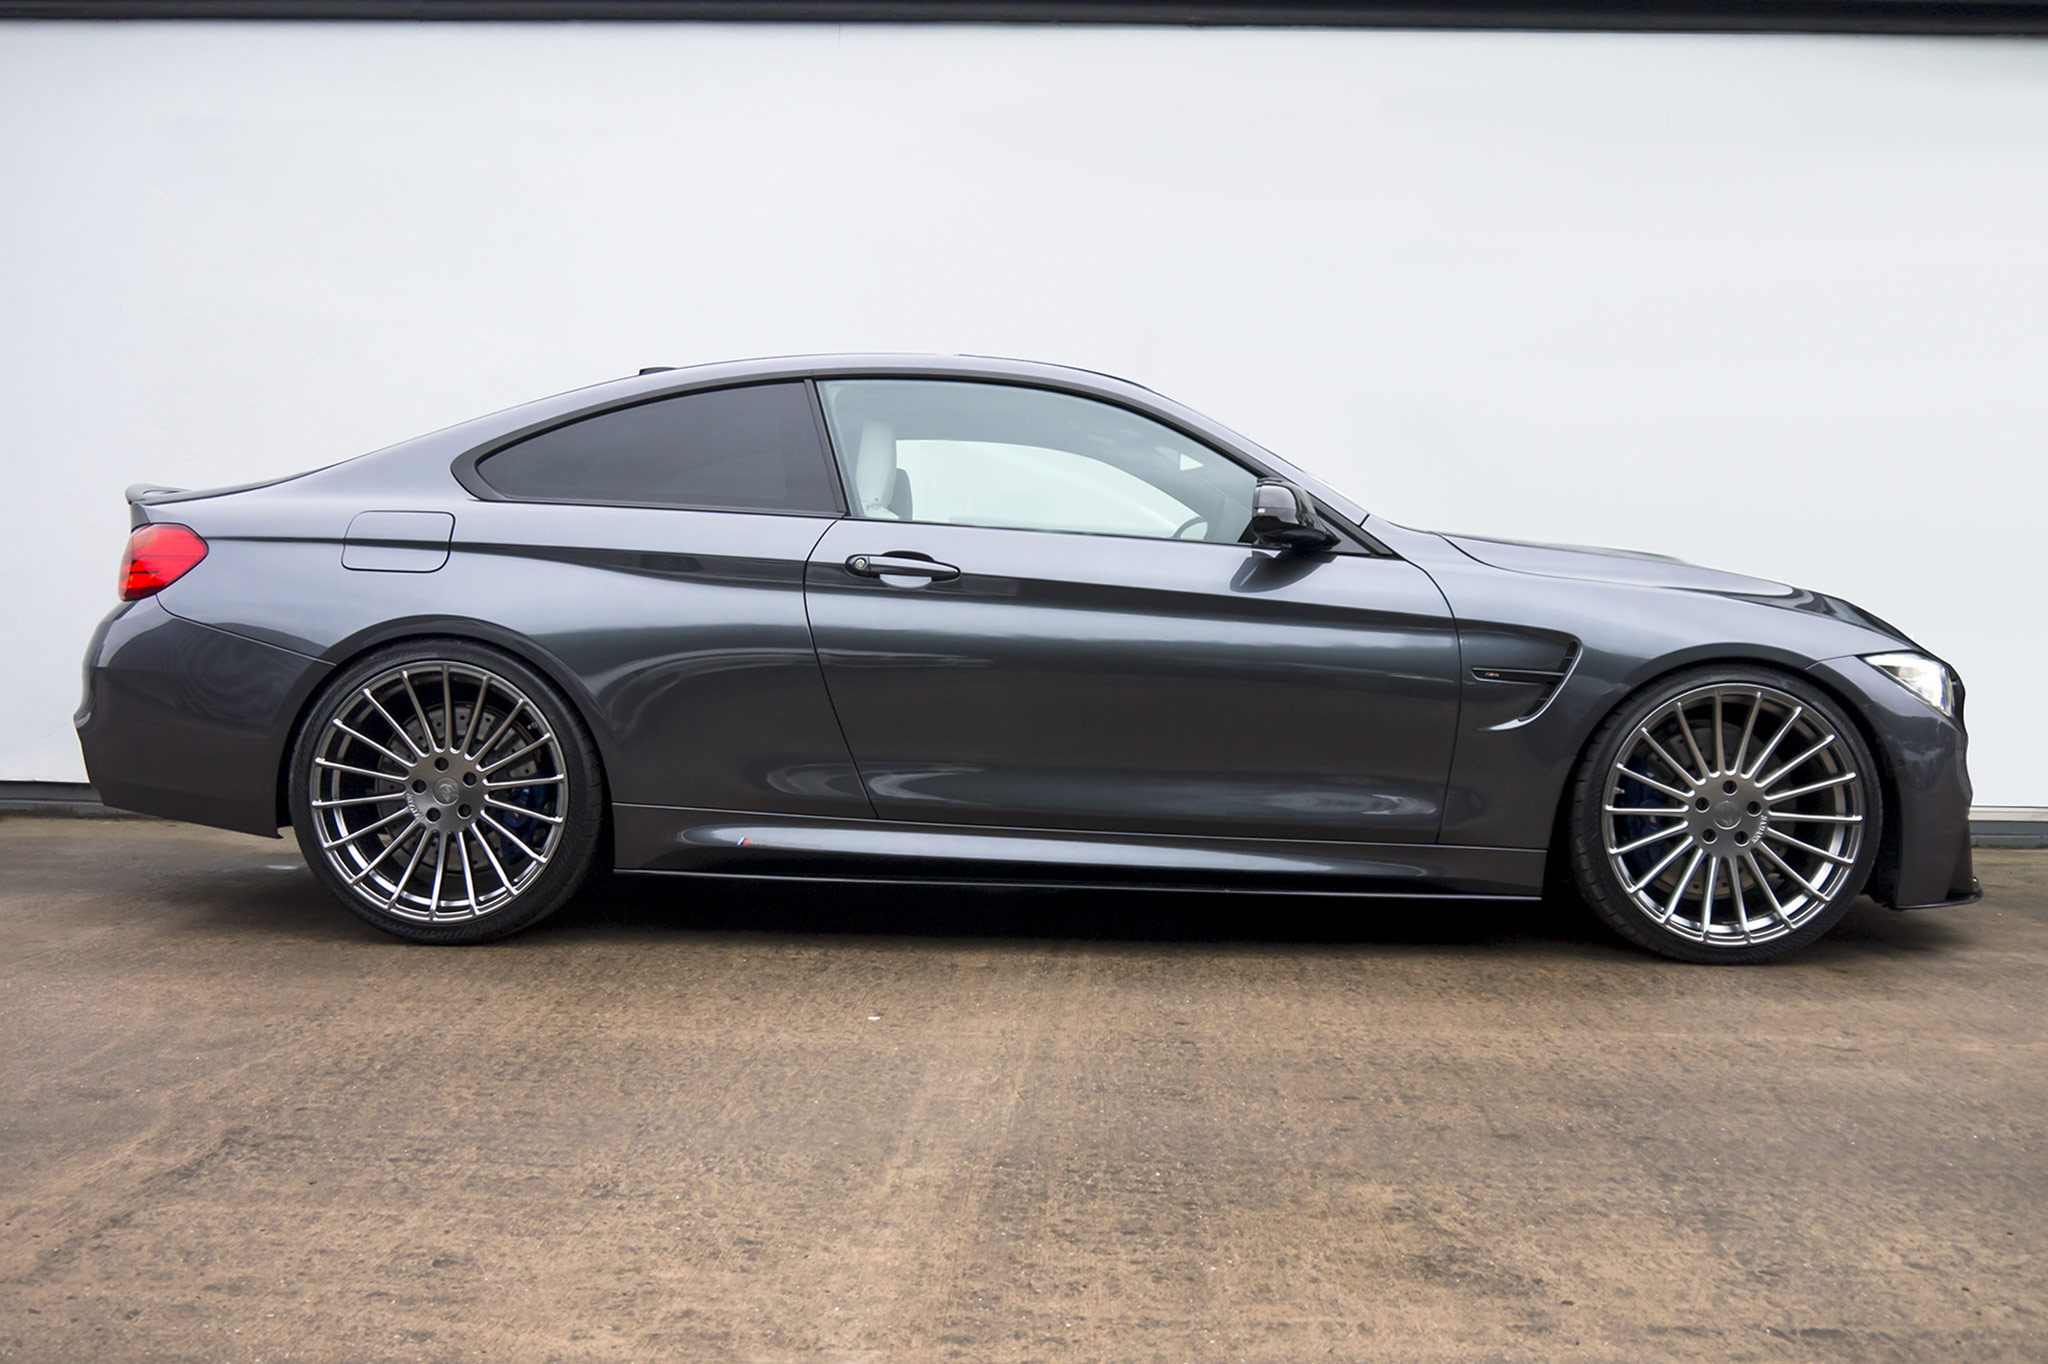 BMW Pre Owned >> HAMANN BMW M4 F82 / F83 - Hamann Motorsport UK